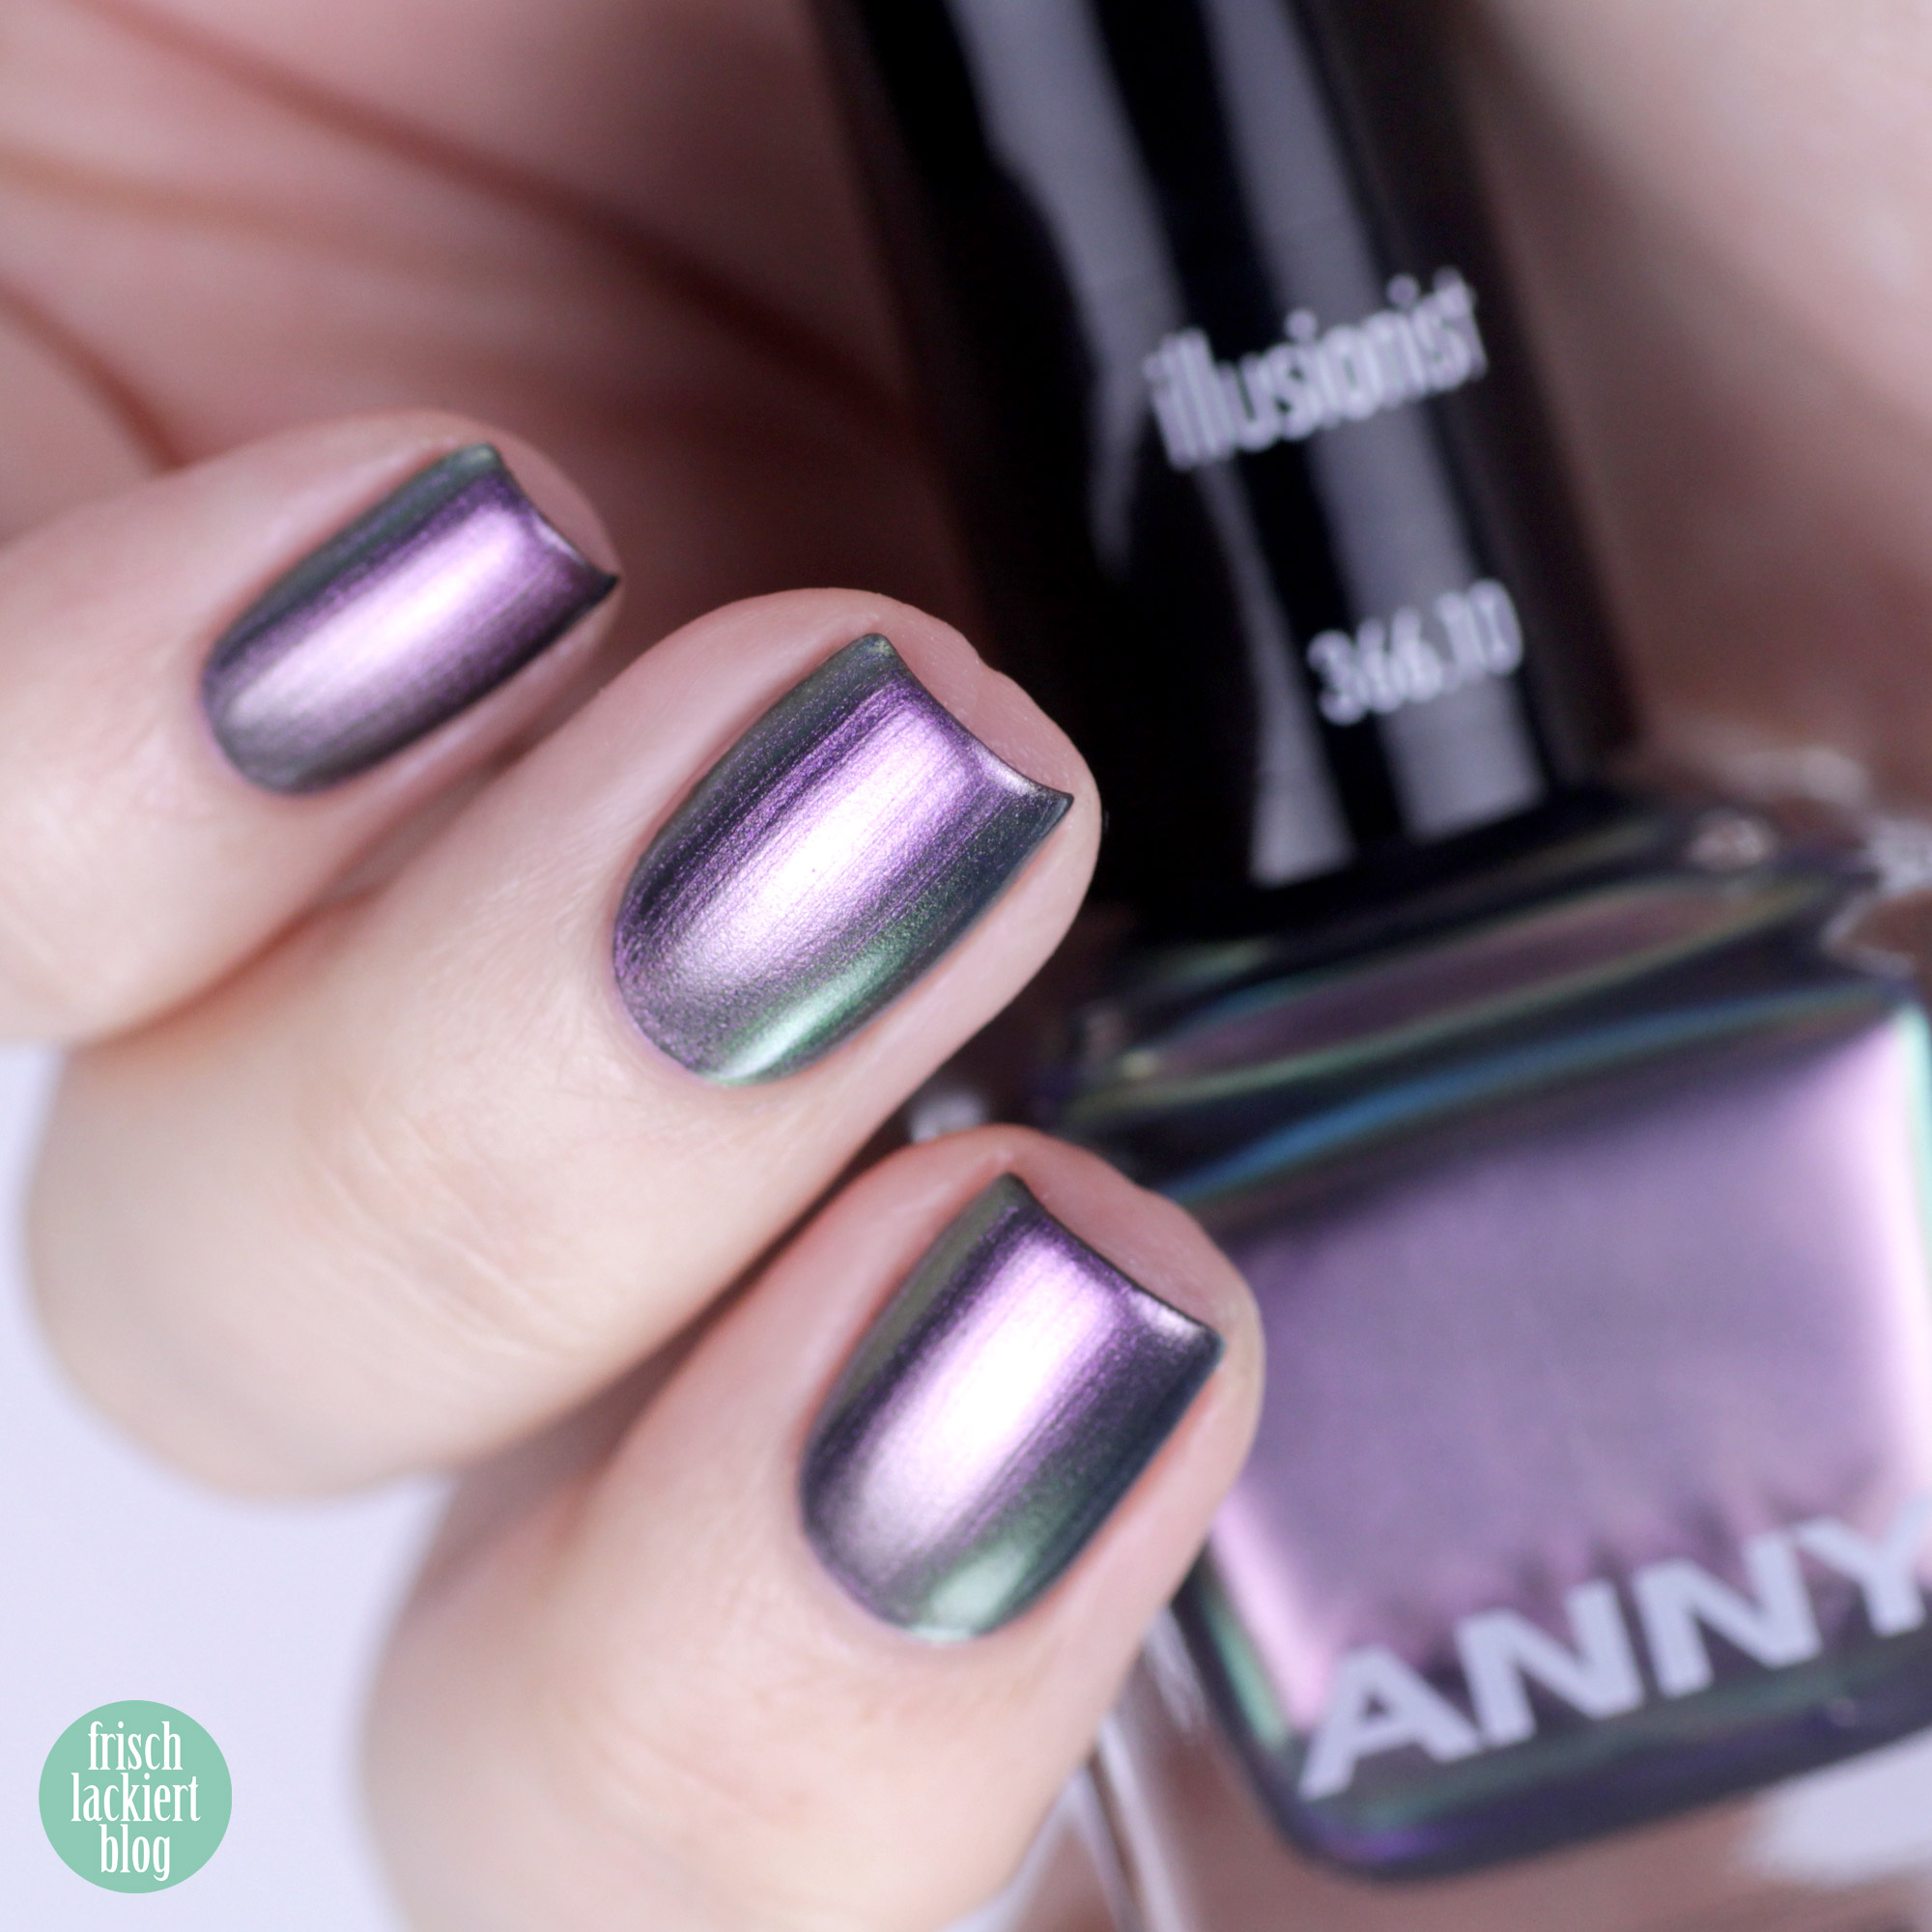 ANNY Holo it´s ANNY Nagellack Kollektion - illusionist – swatch by frischlackiert